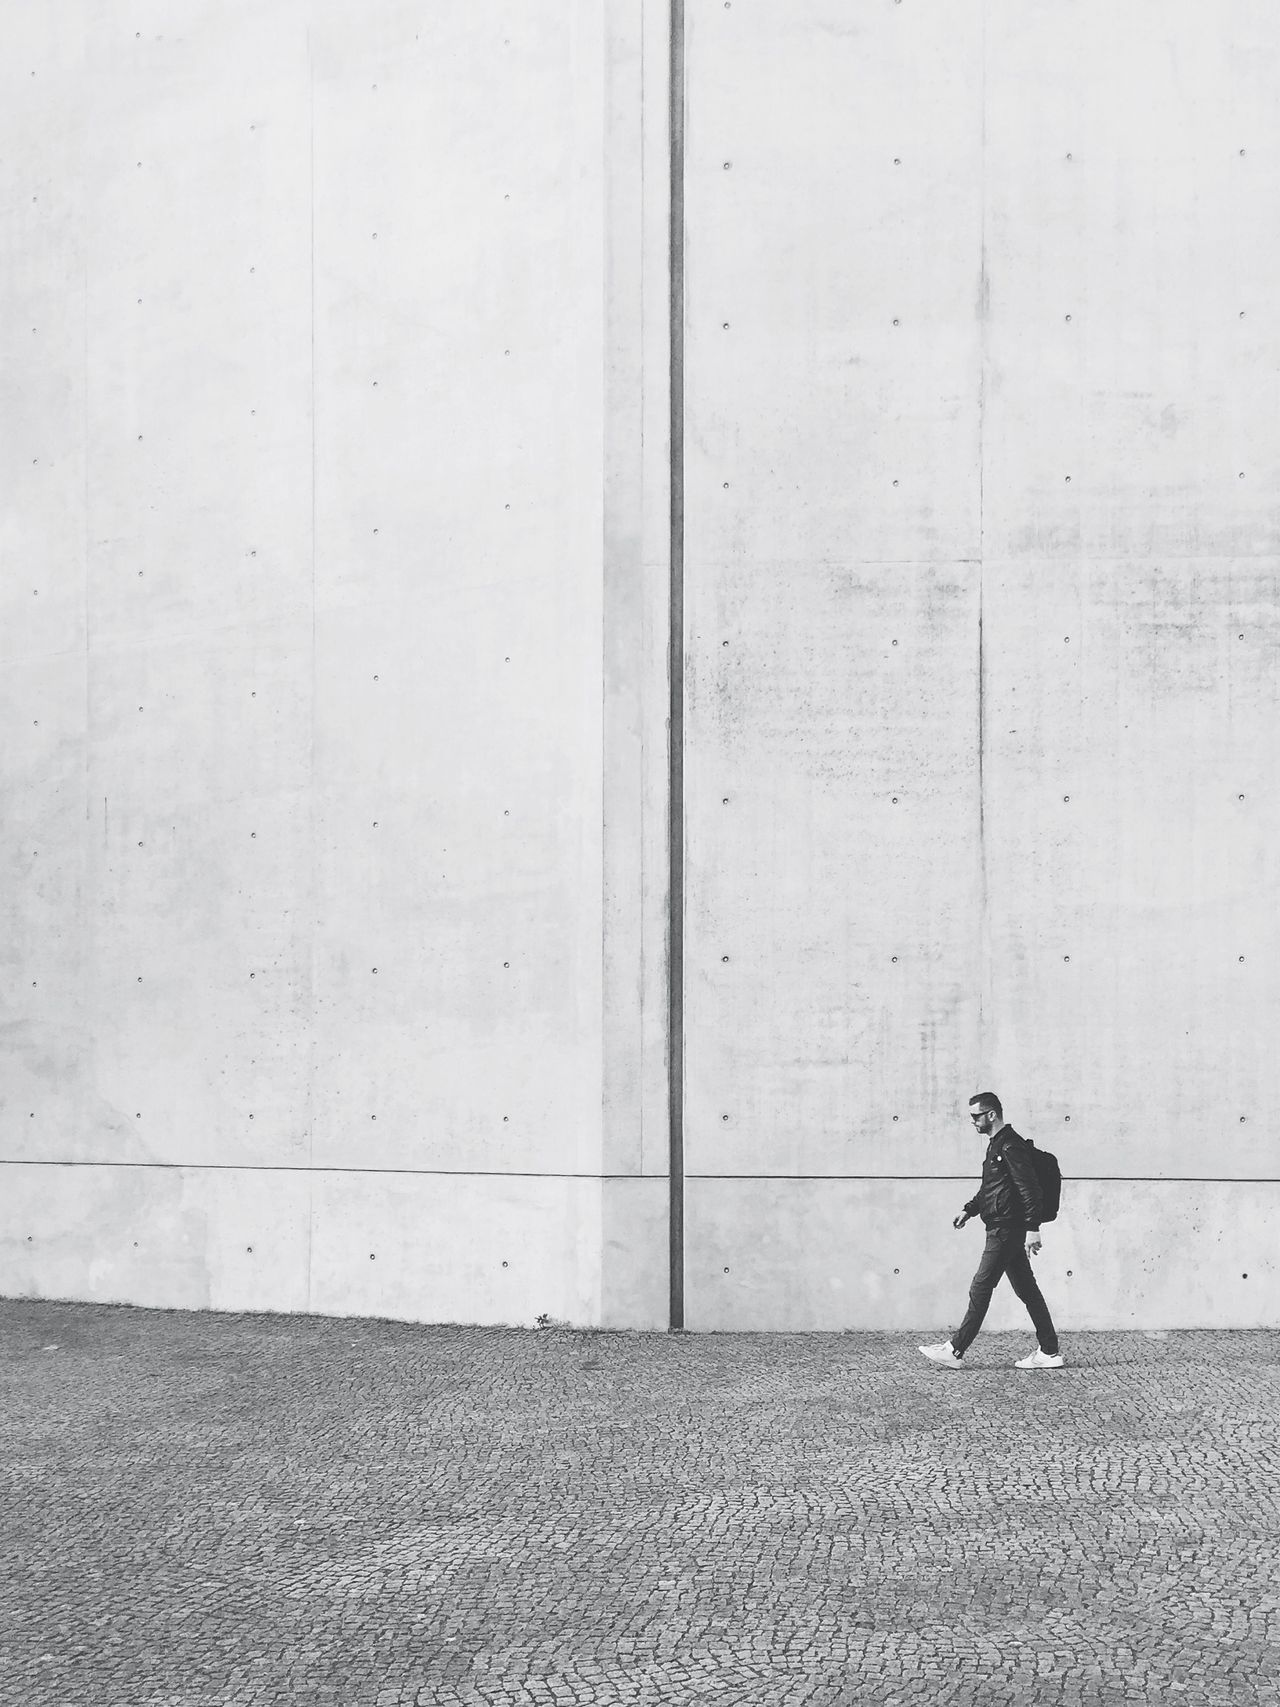 Day Full Length Men One Person Outdoors People Real People Standing The Architect - 2017 EyeEm Awards The Street Photographer - 2017 EyeEm Awards Walking